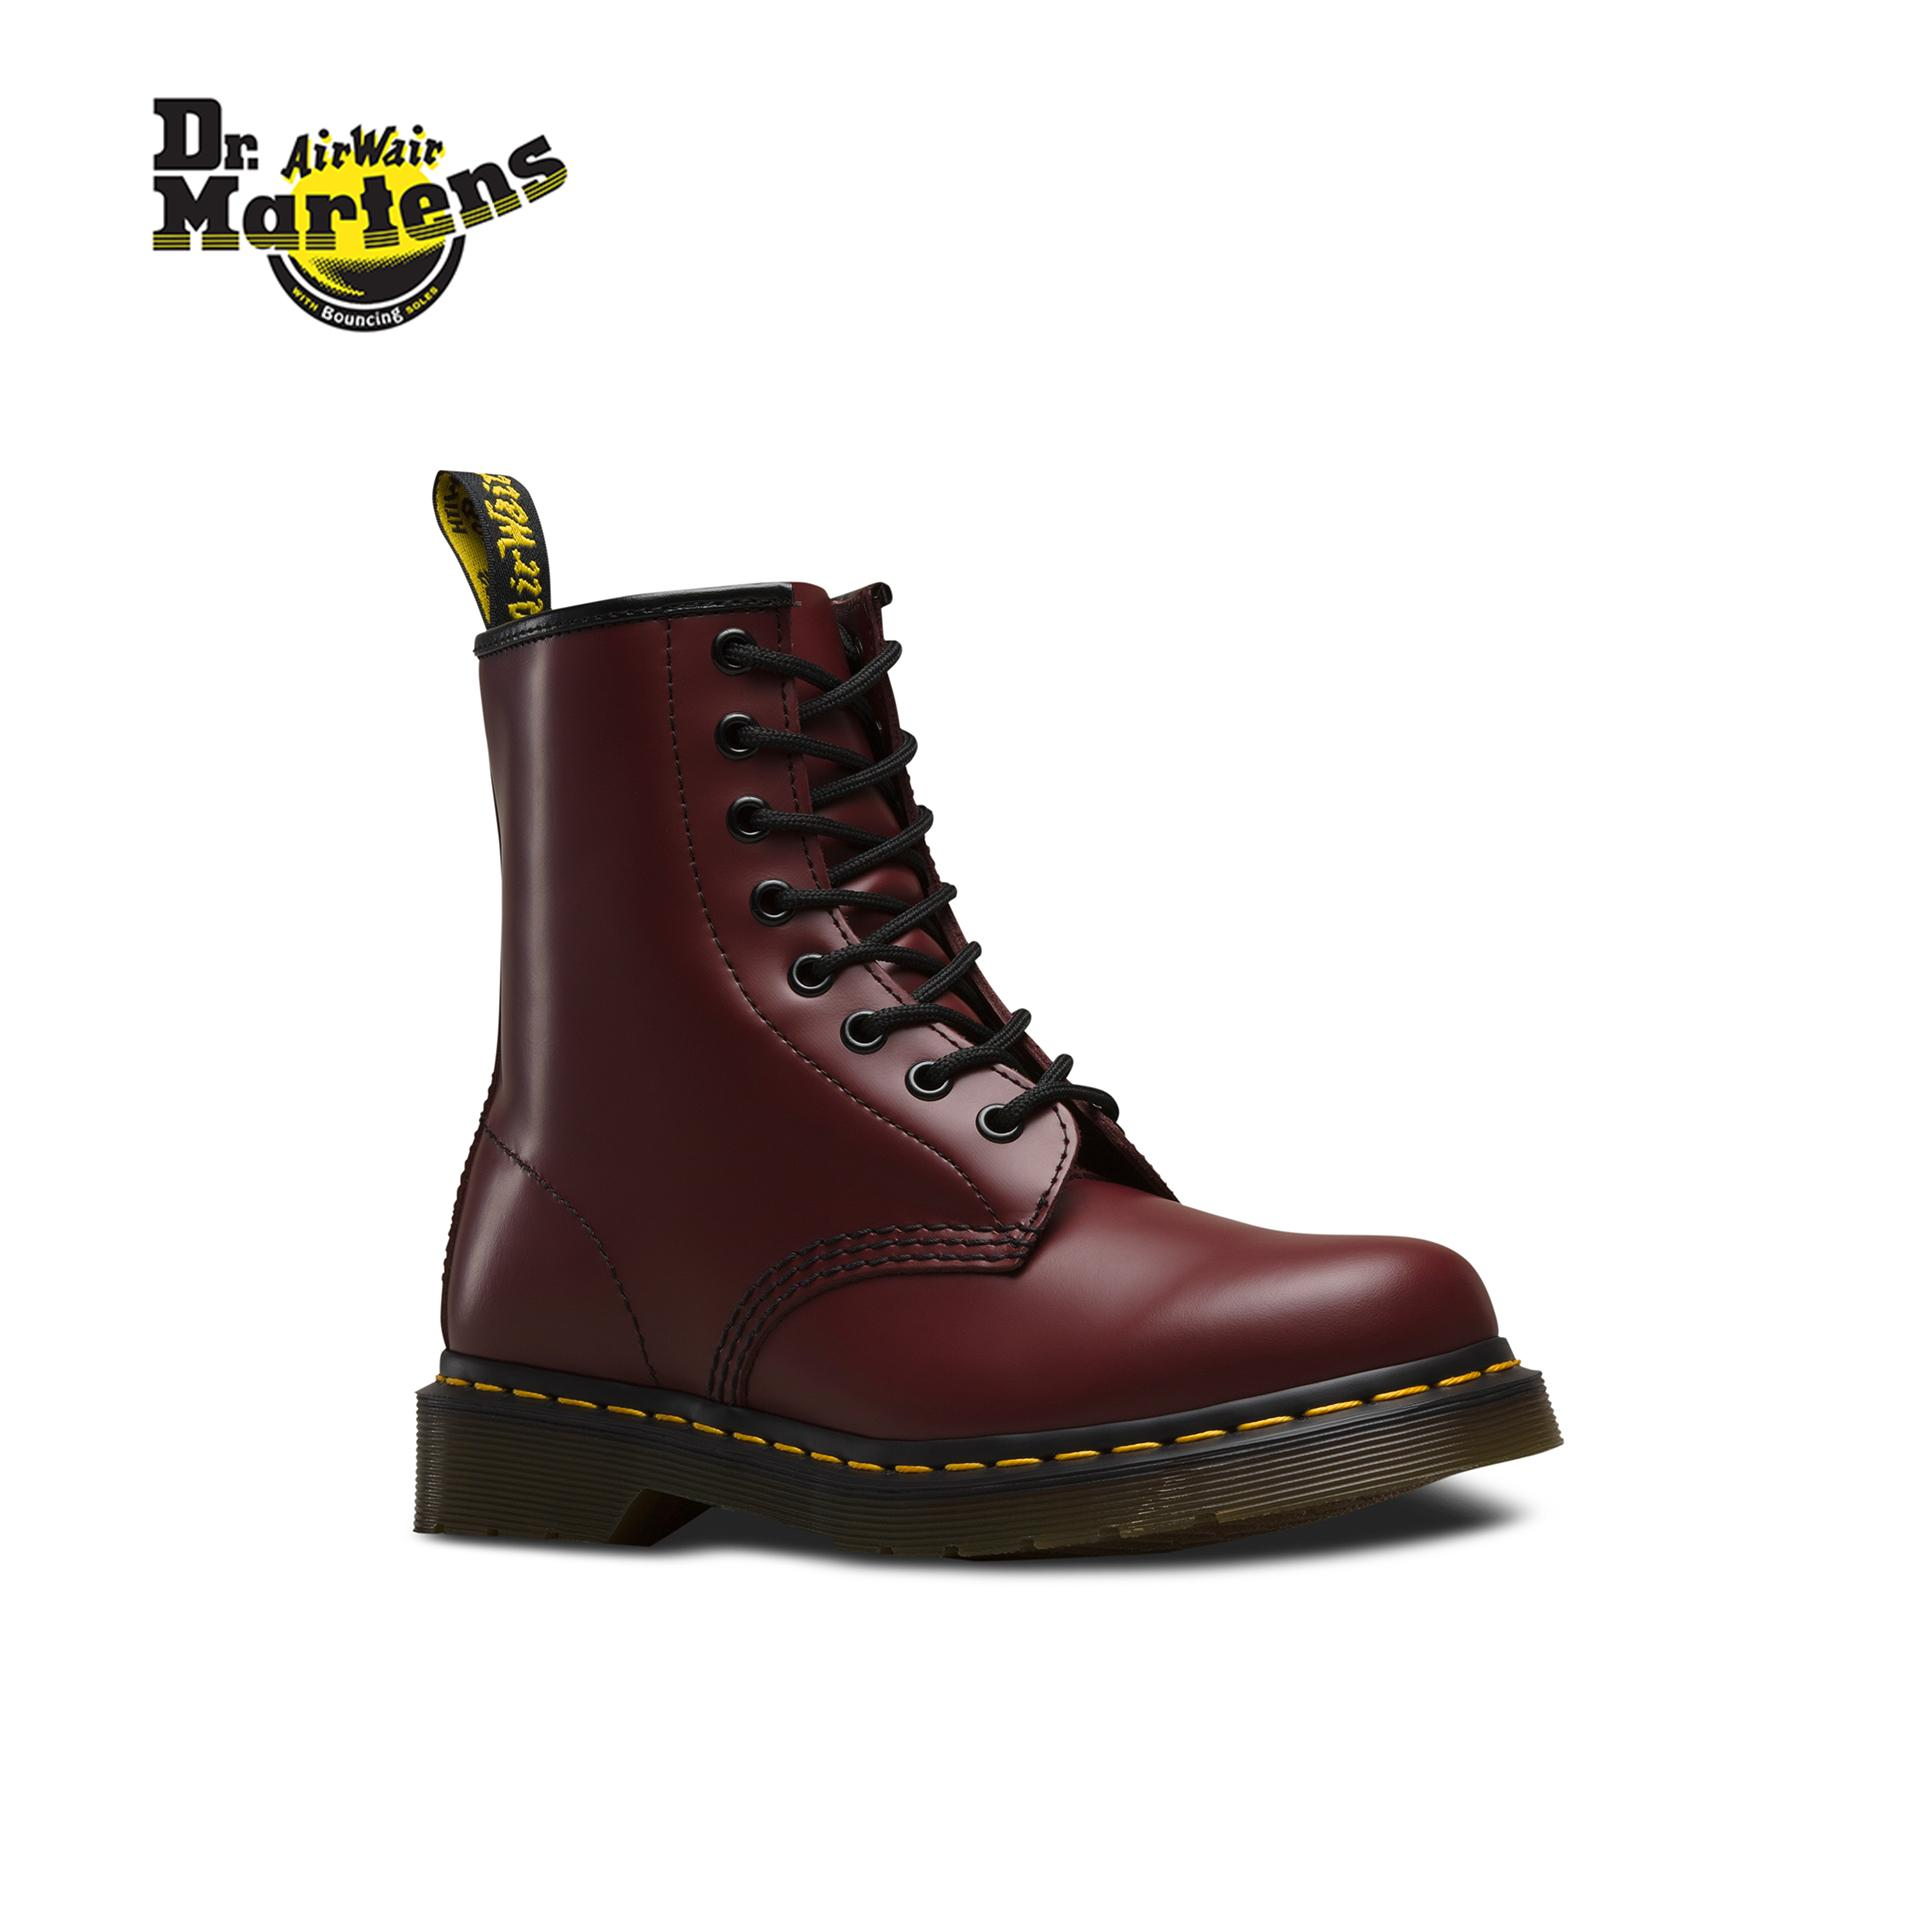 Buy Dr Martens Top Products Online at